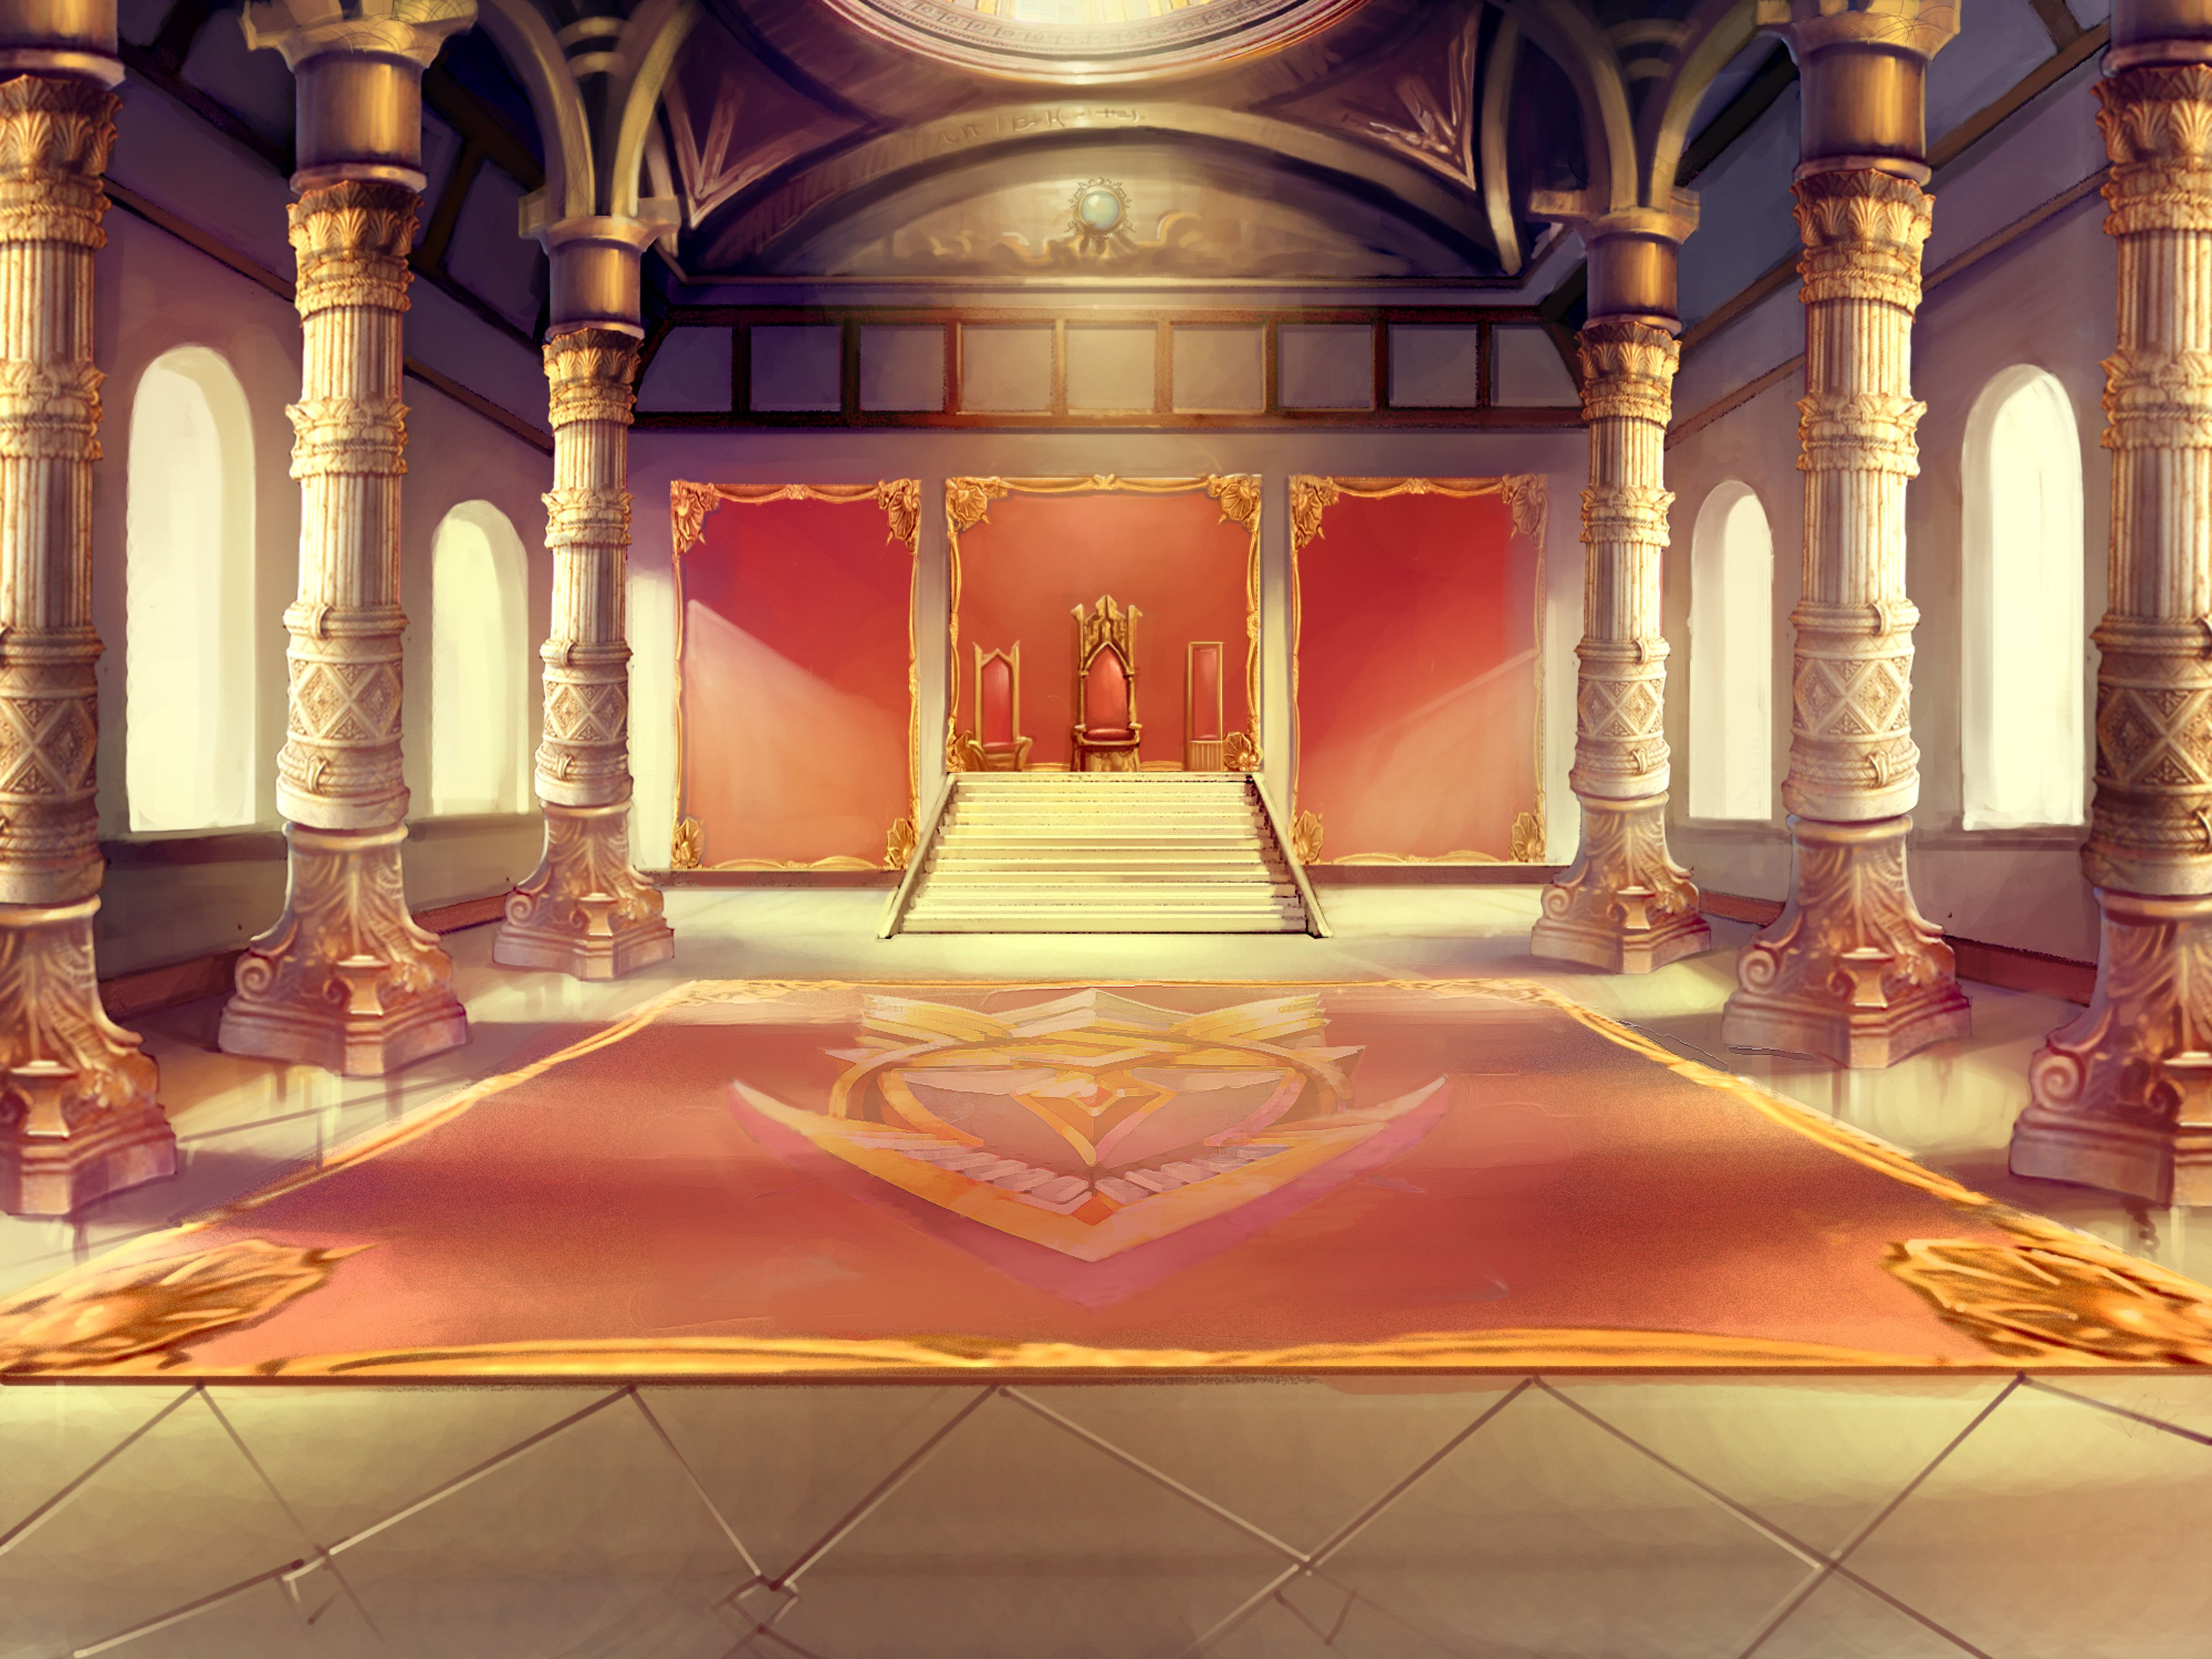 Castle room background - This Concept Goes Great With The Ugly Duckling Familys Throne Room 3 Thrones And Majestic